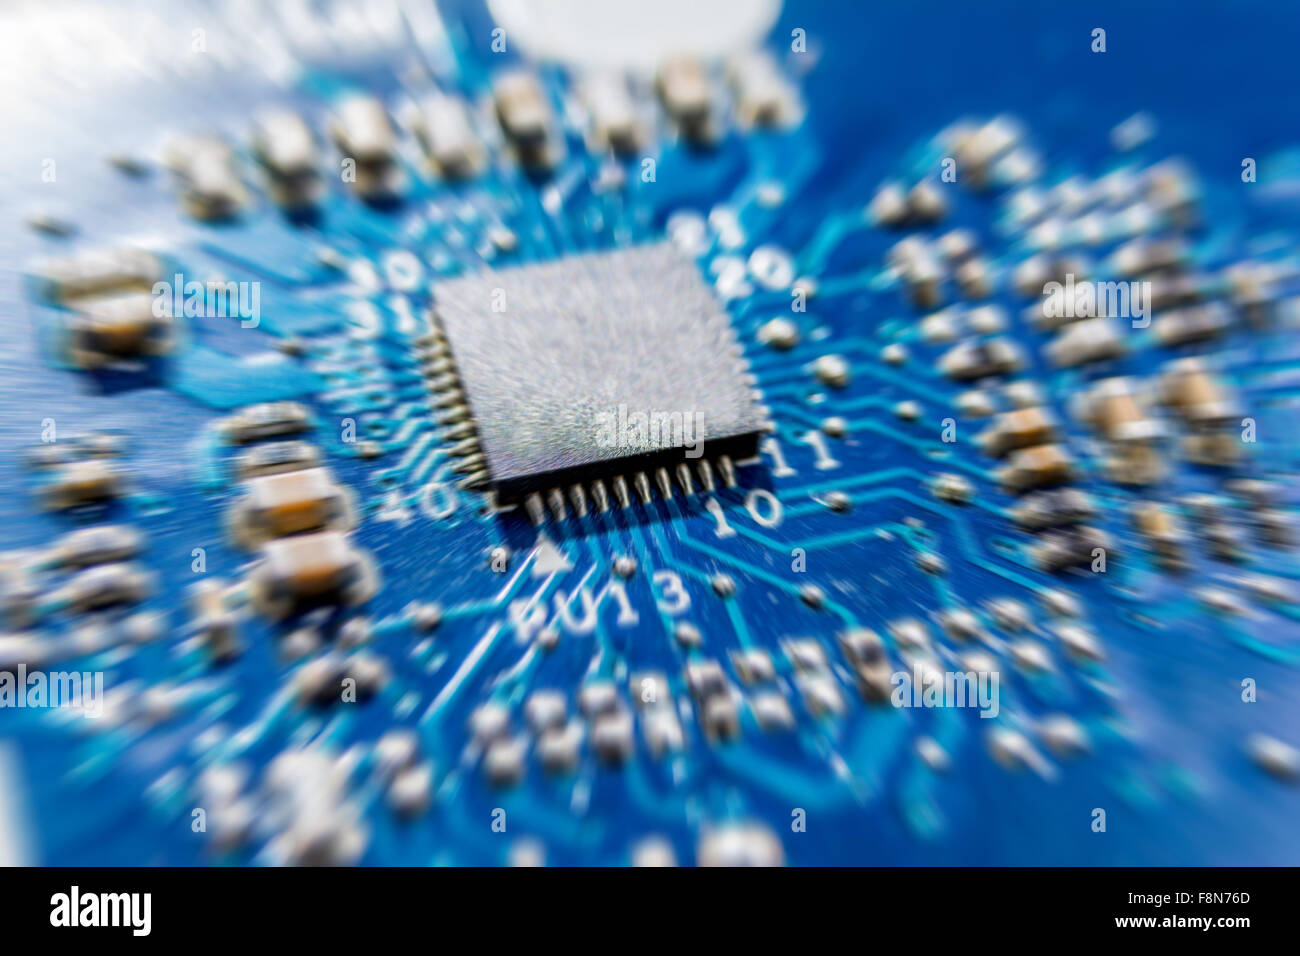 Blue Digital Computer Brain On Circuit Board With Glows And Flares Electronic Stock Photos Image 5268093